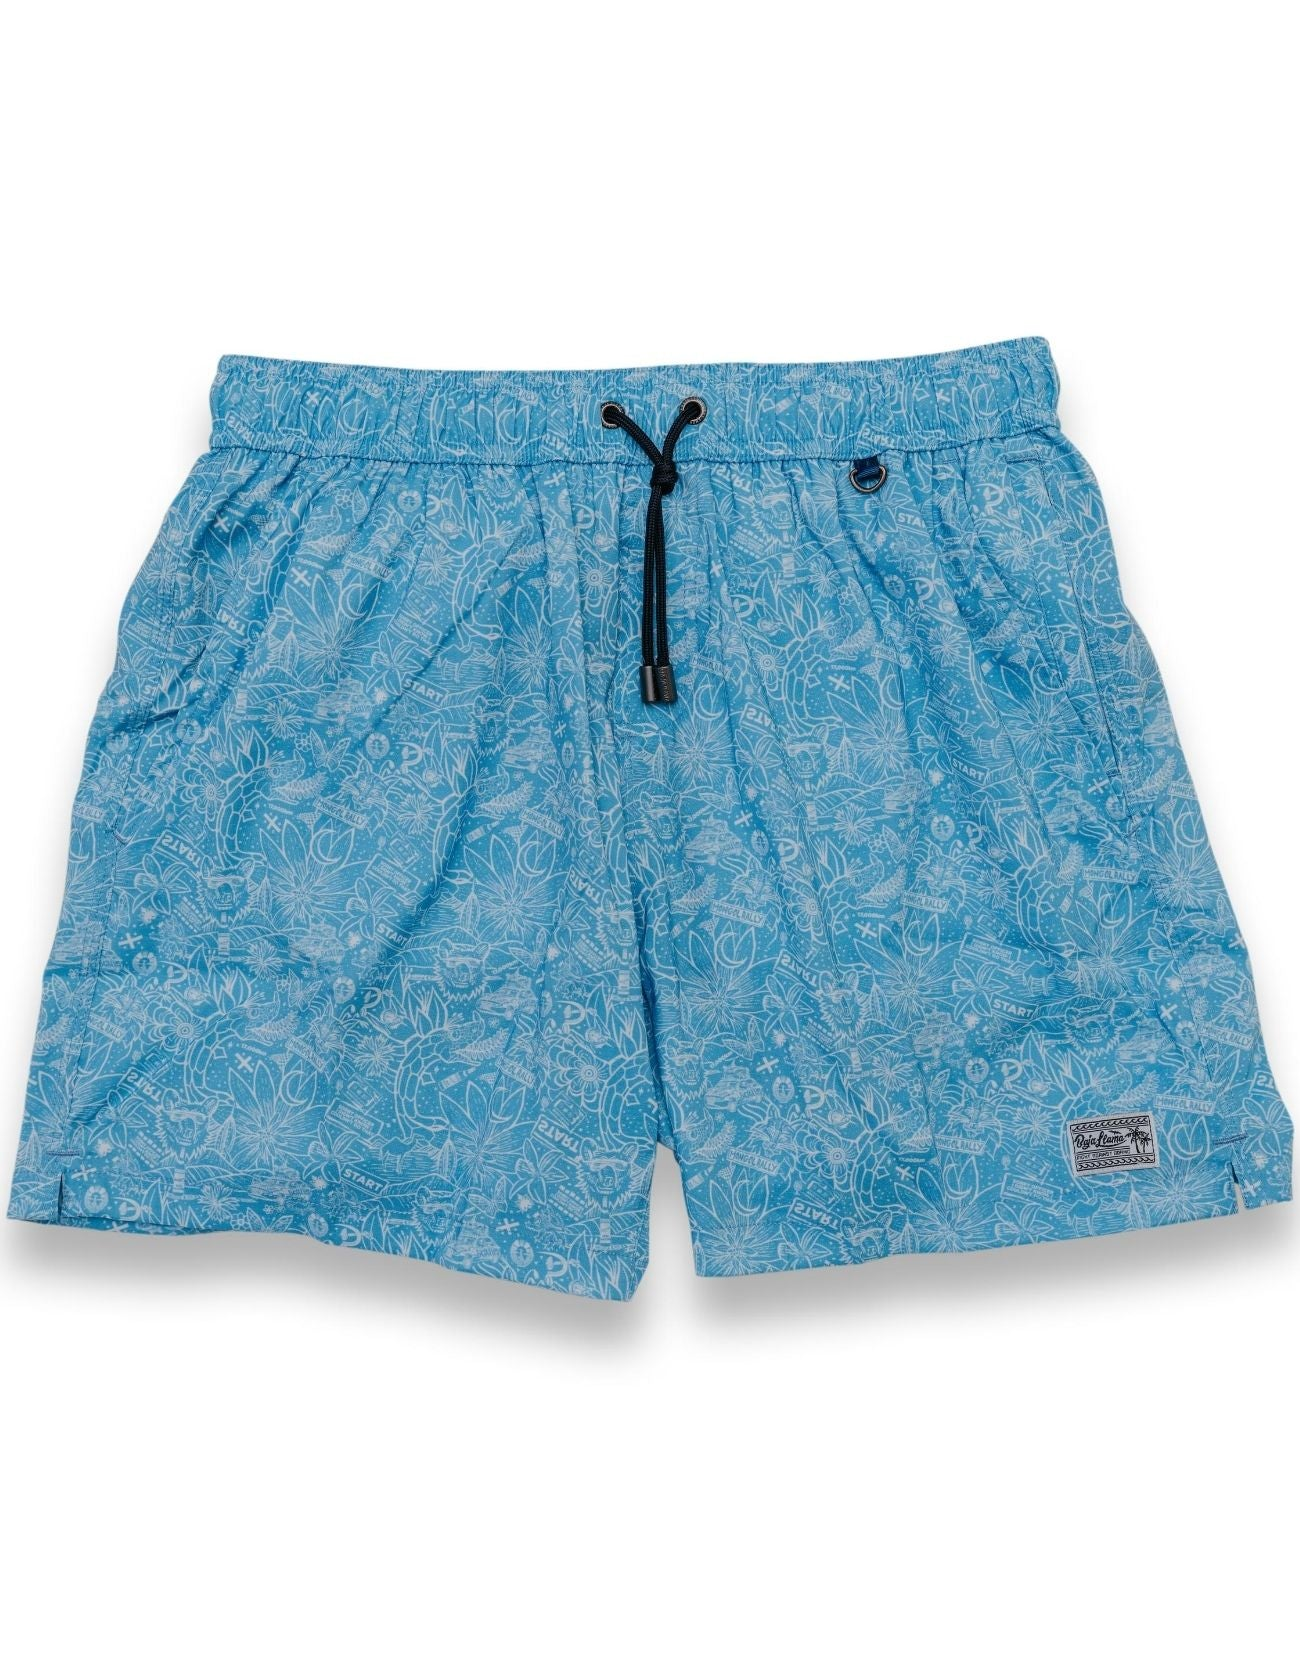 Baja Llama Mongol Rally Neptune Swimmers Light Blue Swim Trunks